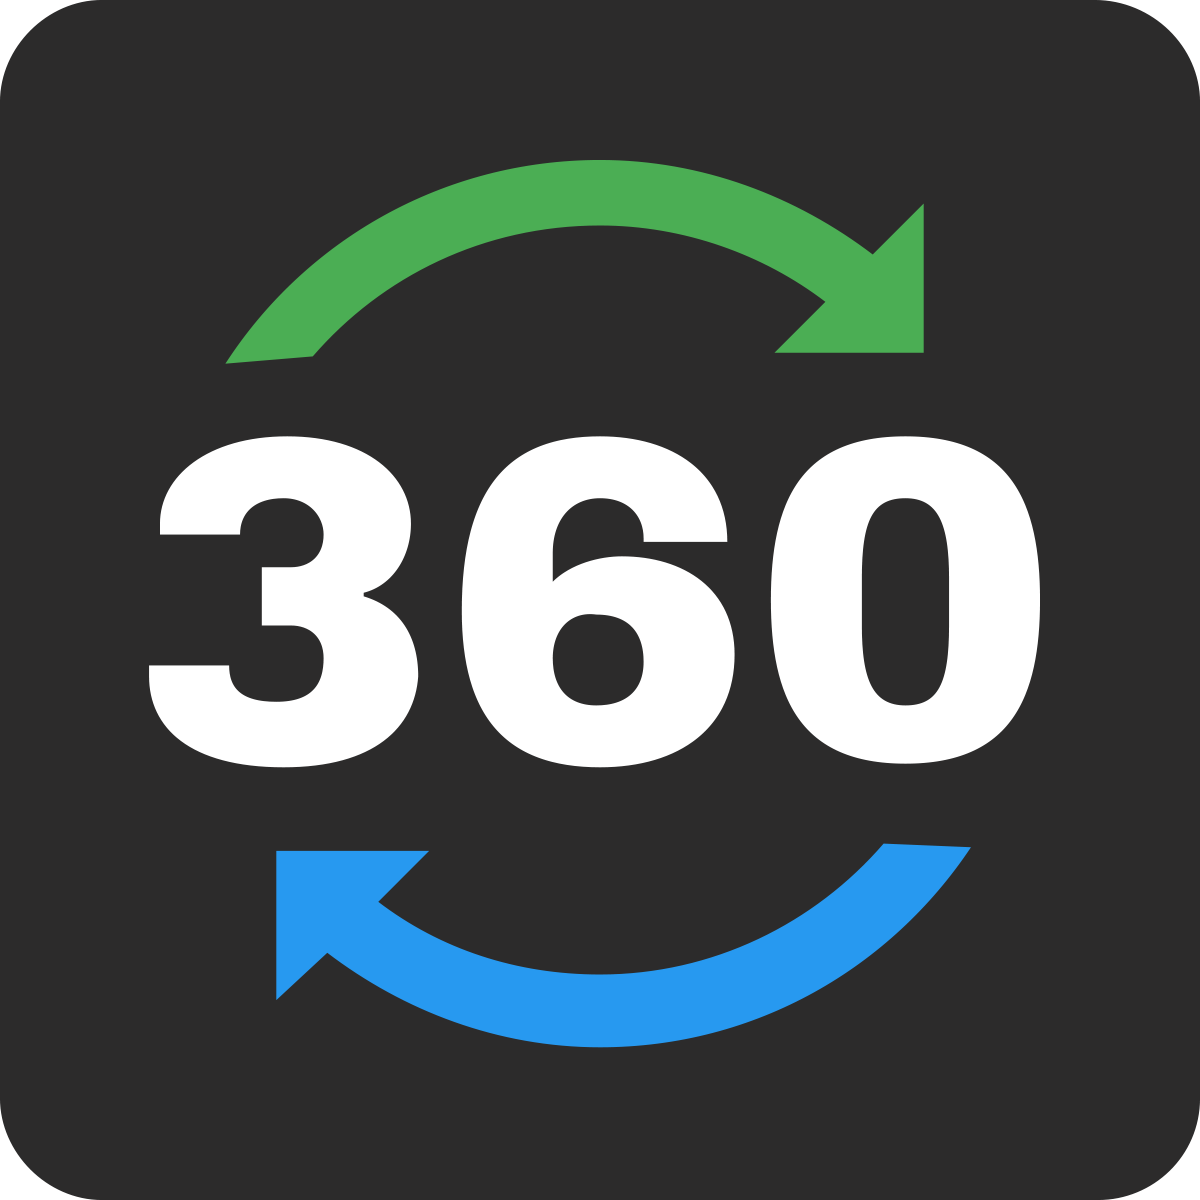 Hire Shopify Experts to integrate 360 Product Spinner app into a Shopify store